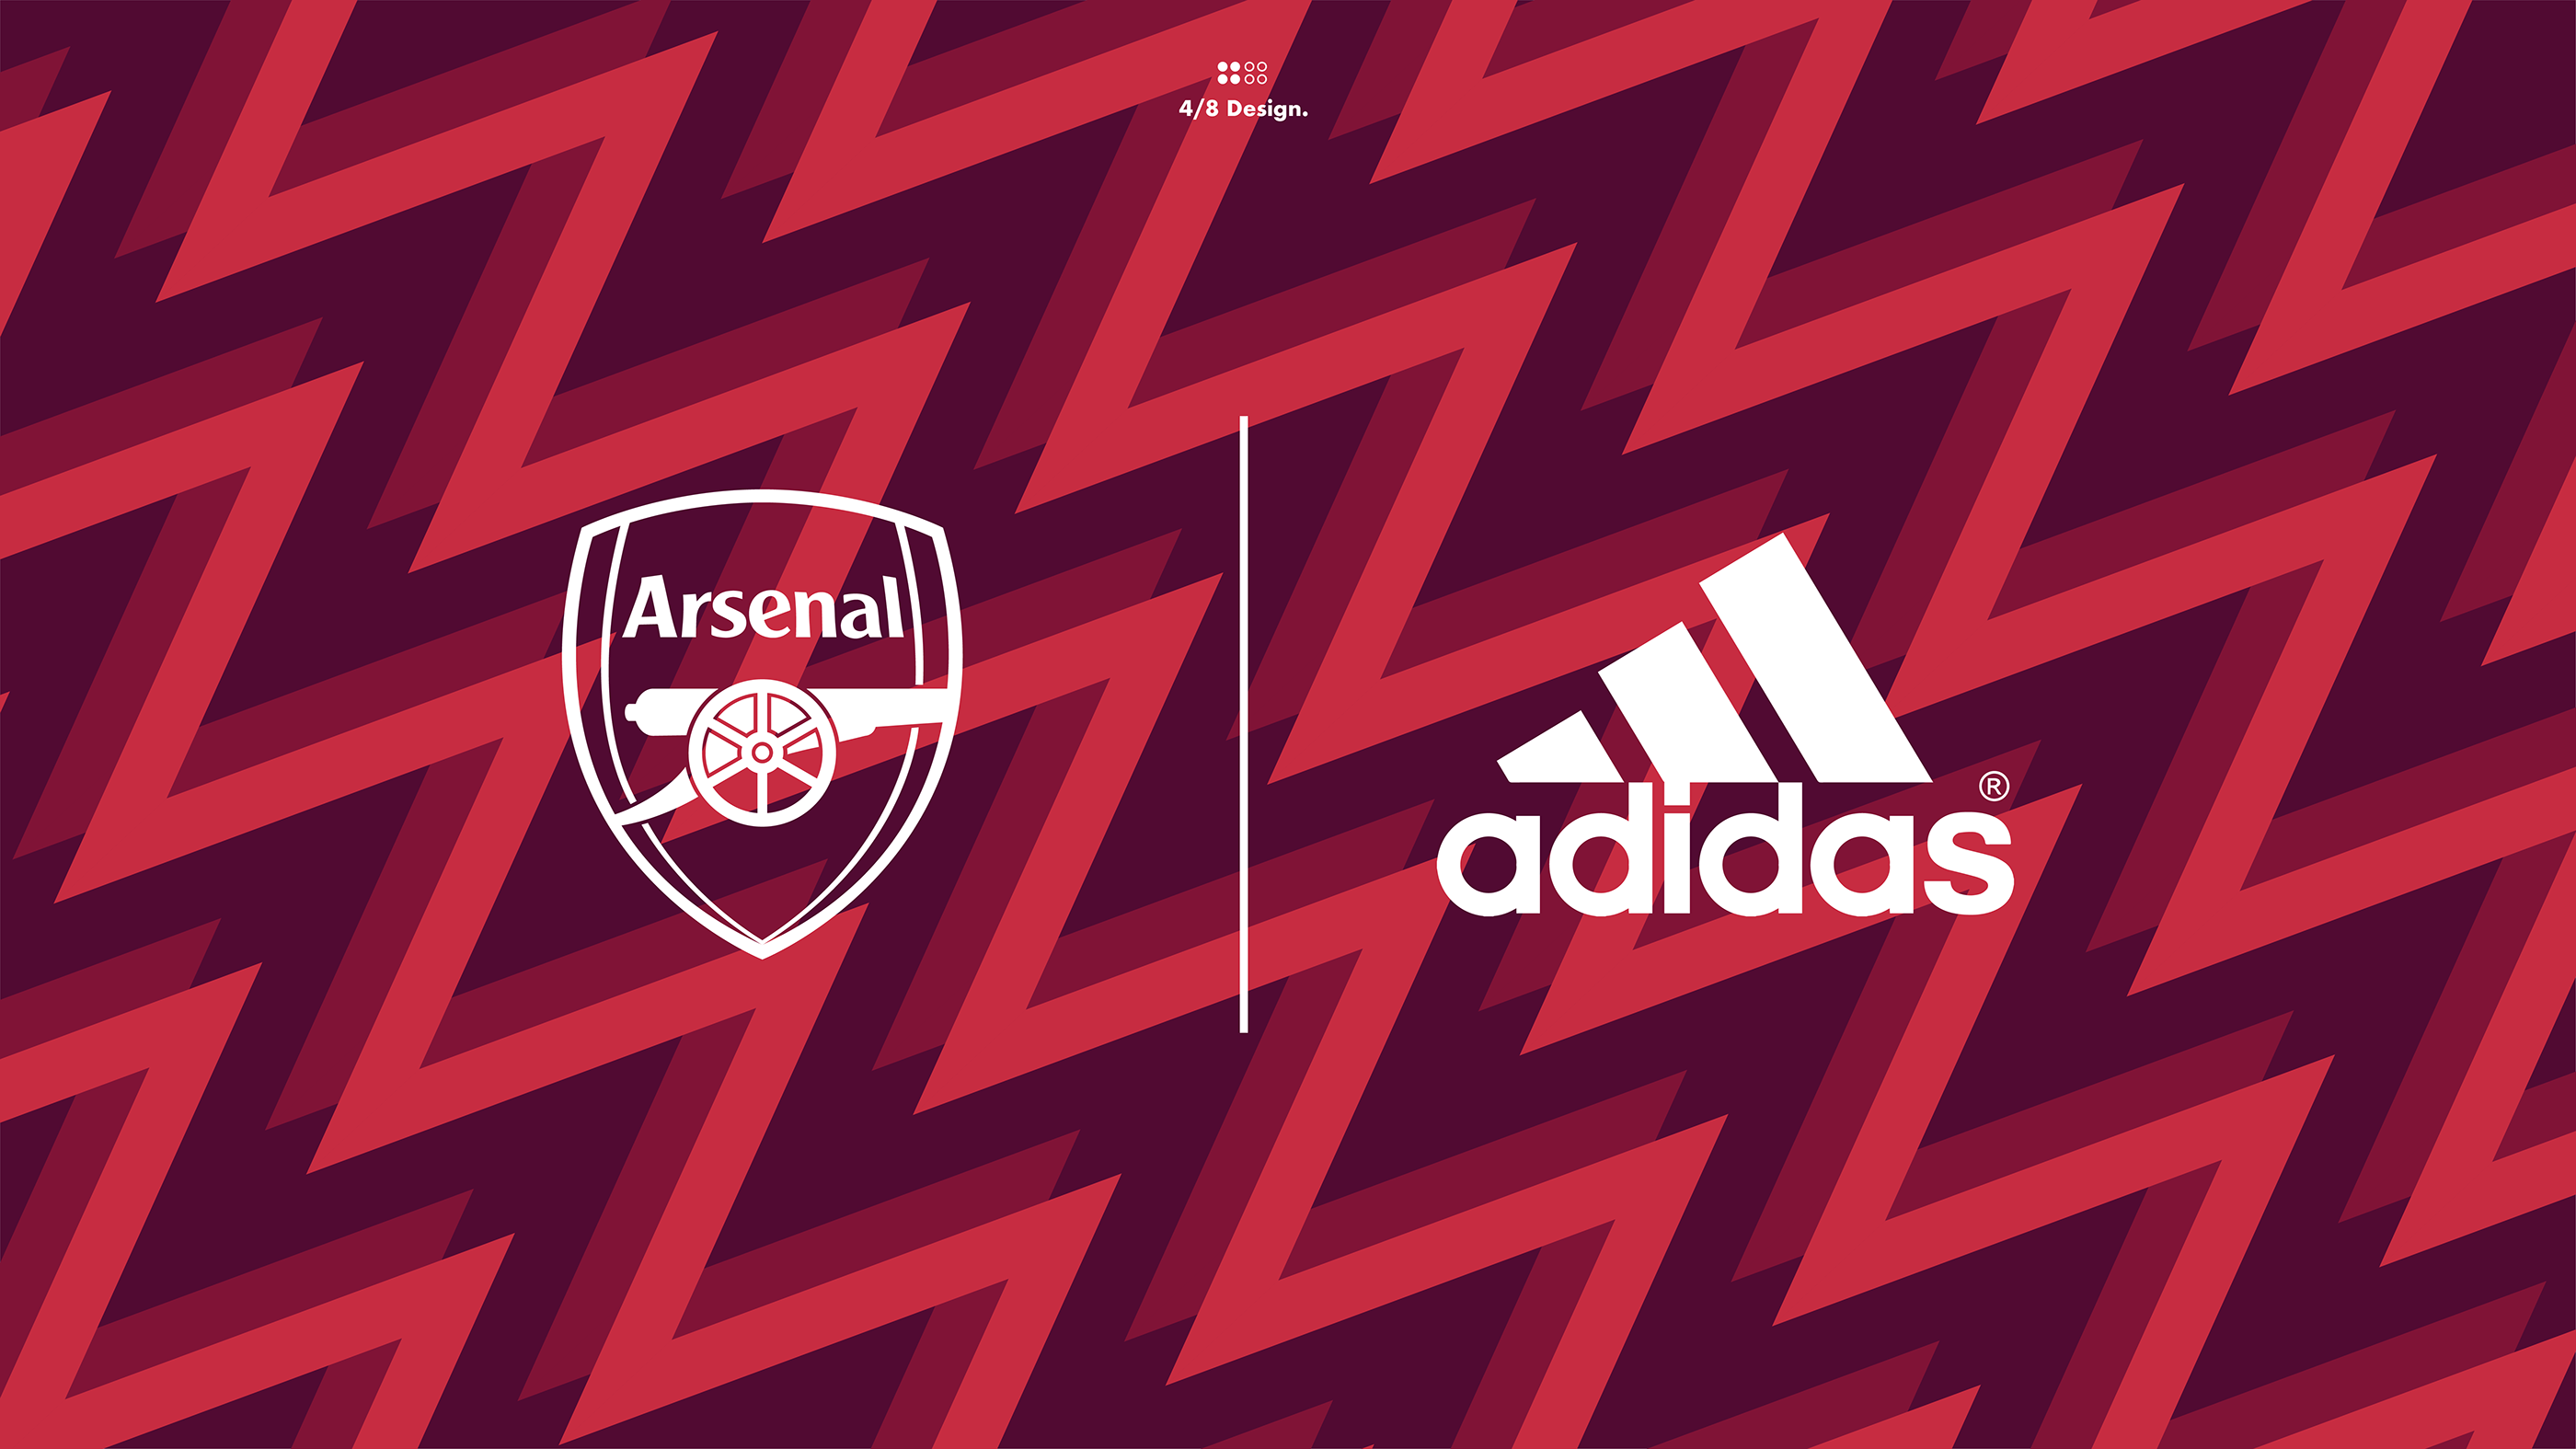 Wallpaper Arsenal Artwork